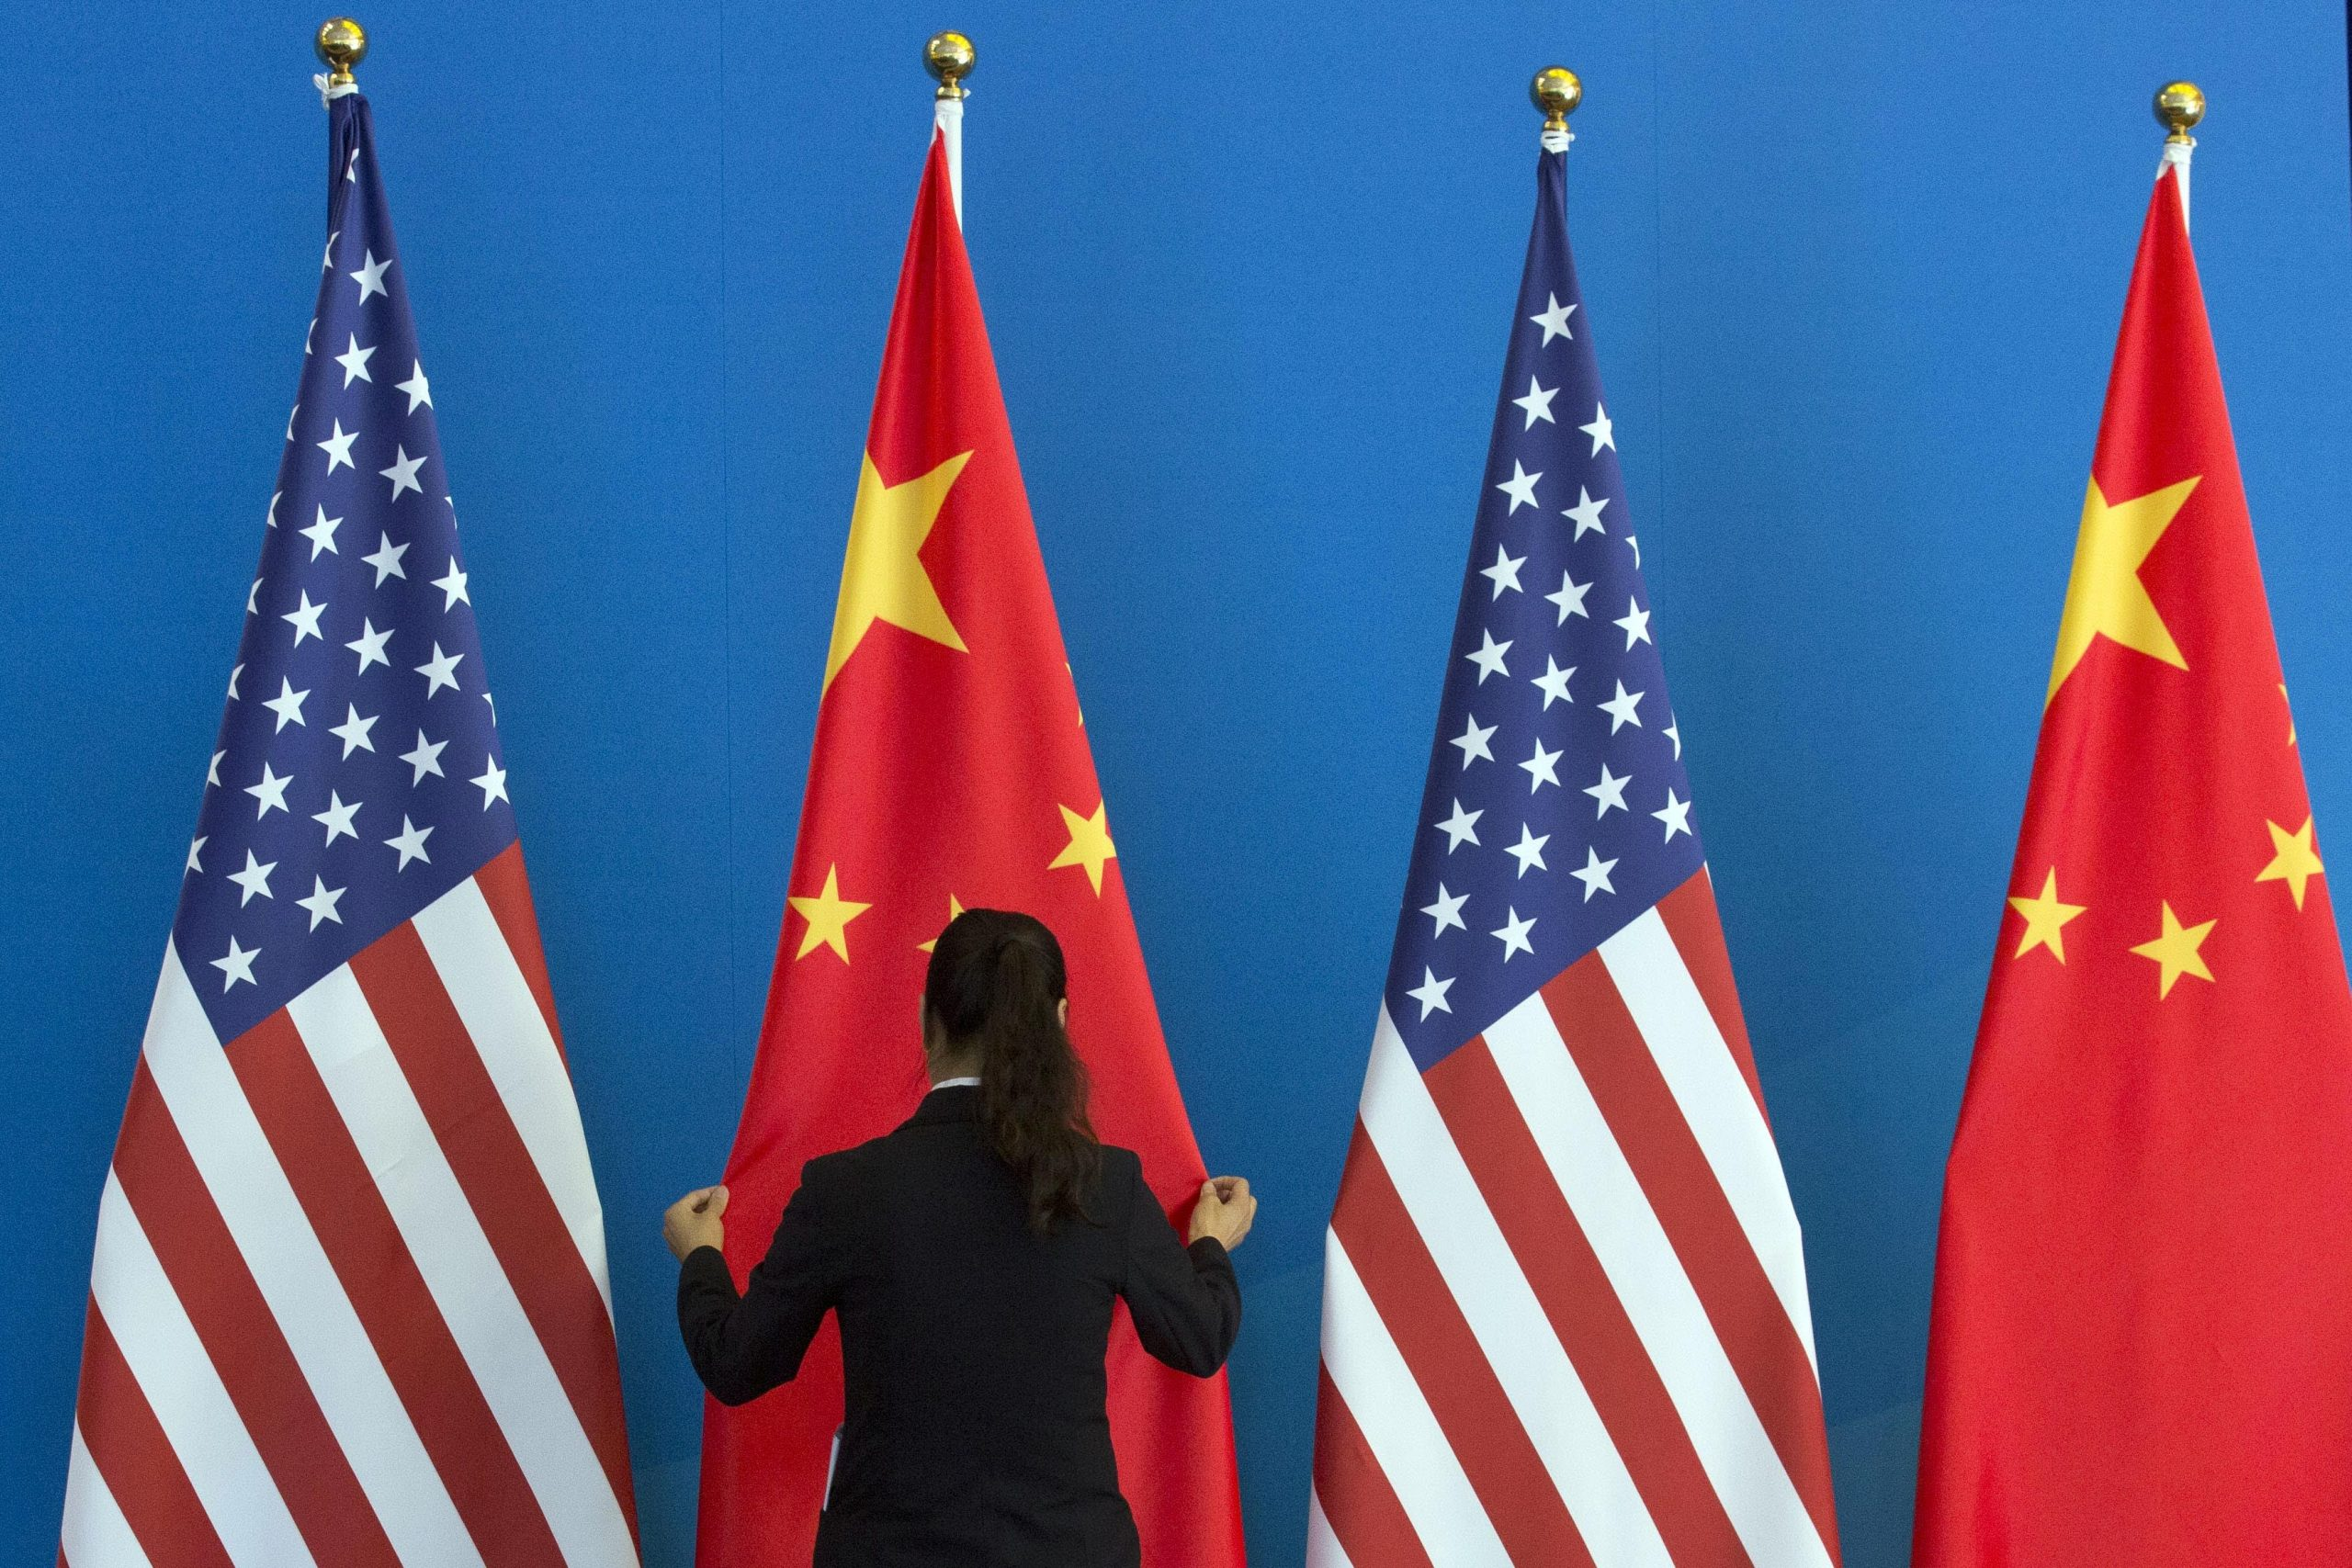 China responded to the delisting of Chinese companies from the New York Stock Exchange